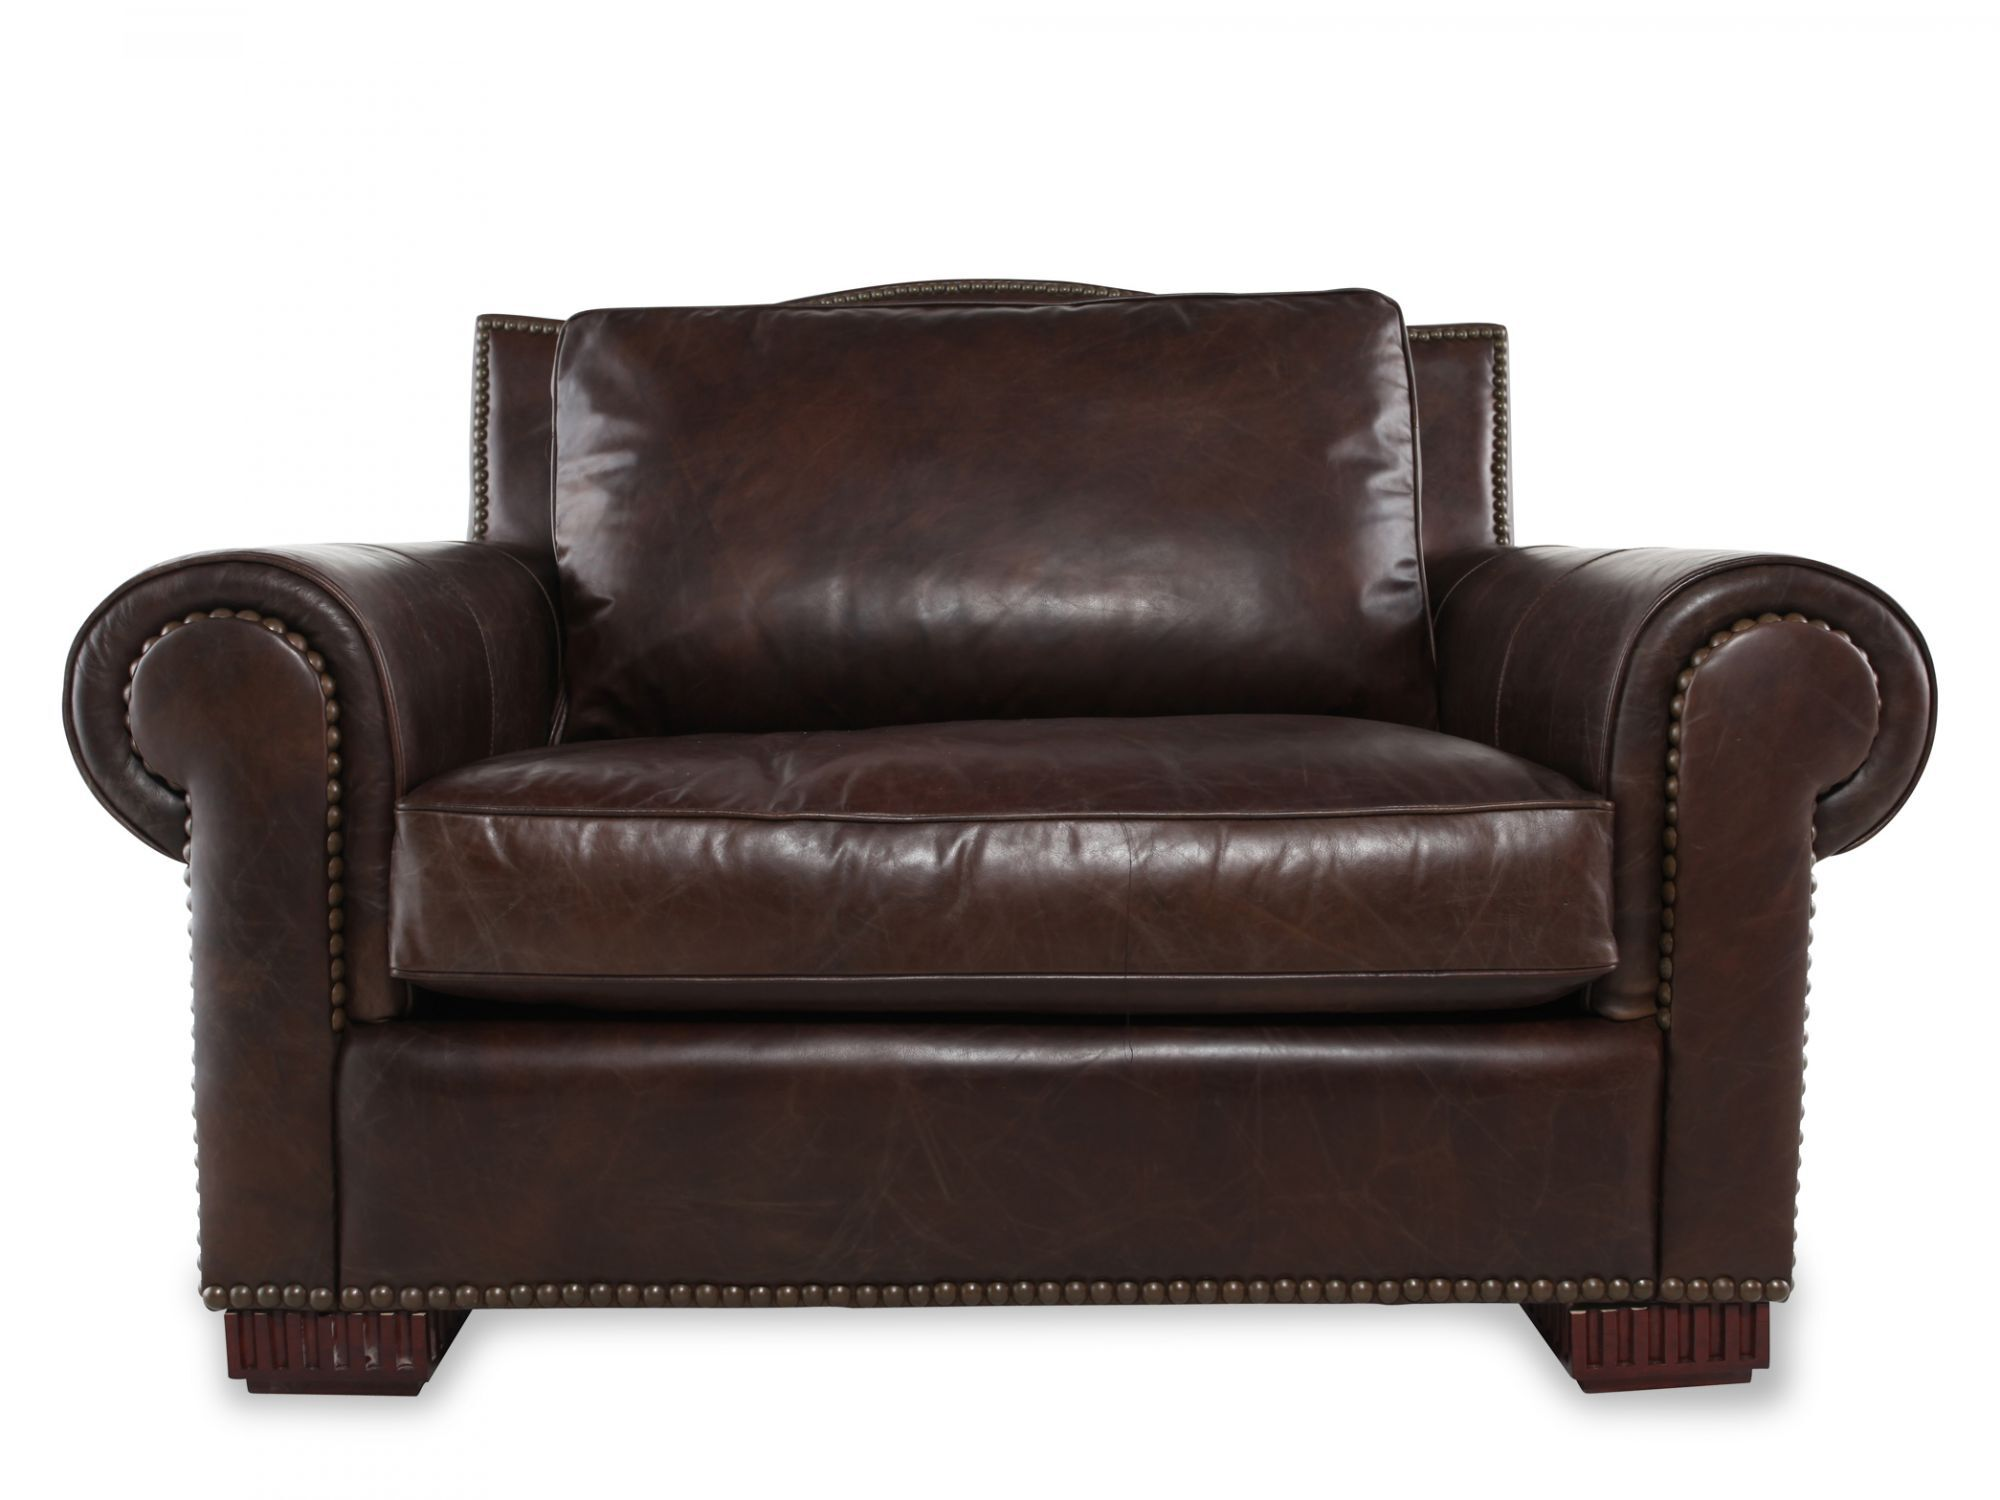 NailheadTrimmed Leather Chair and a Half in Dark Brown